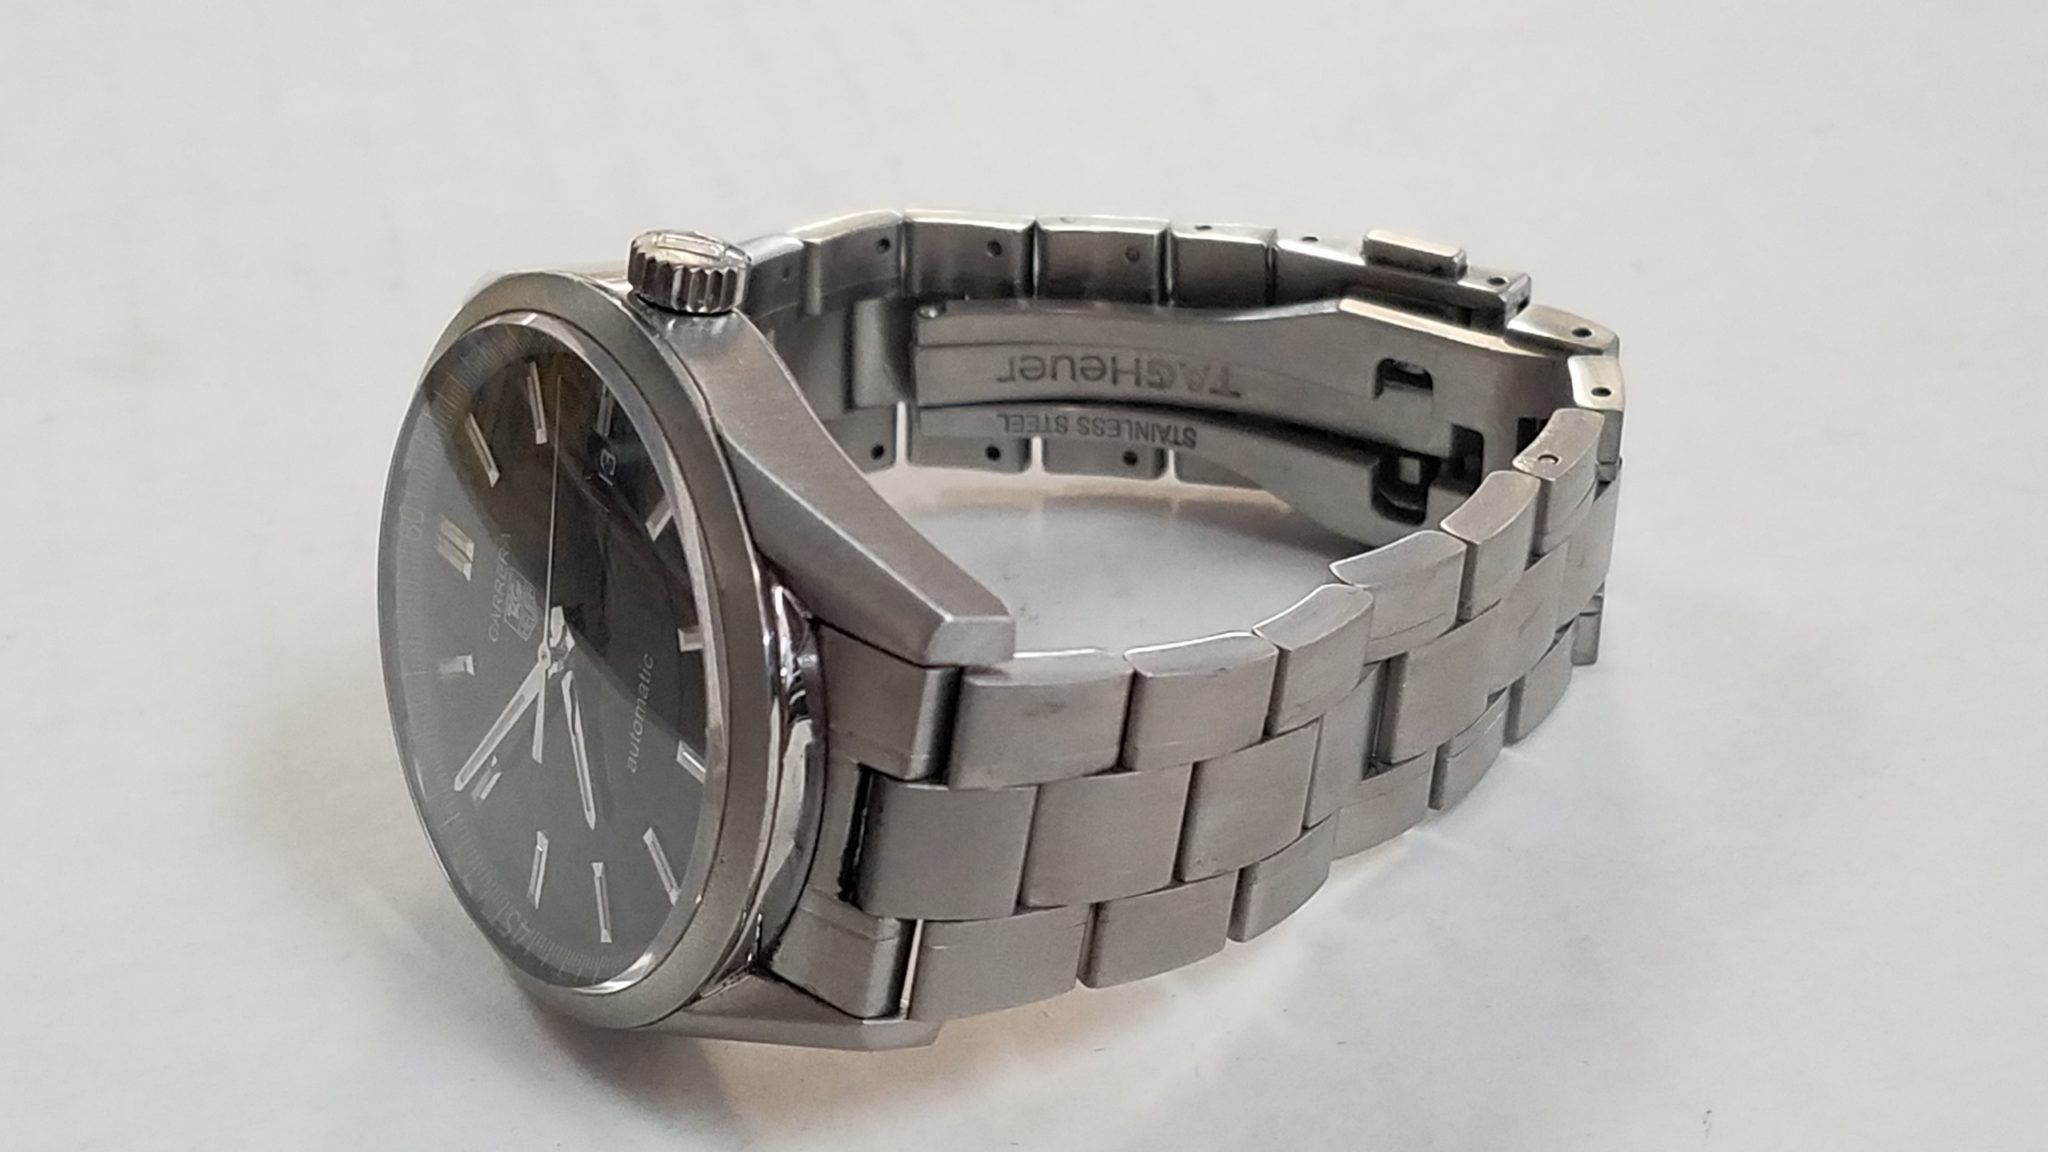 1321c4319b7 Tag Heuer Carrera Calibre 5 Mens Automatic WV211B-2 Pre-Owned in excellent  working condition, shows minimal wear please see pics.. Fits a 6 1/2 inch  wrist